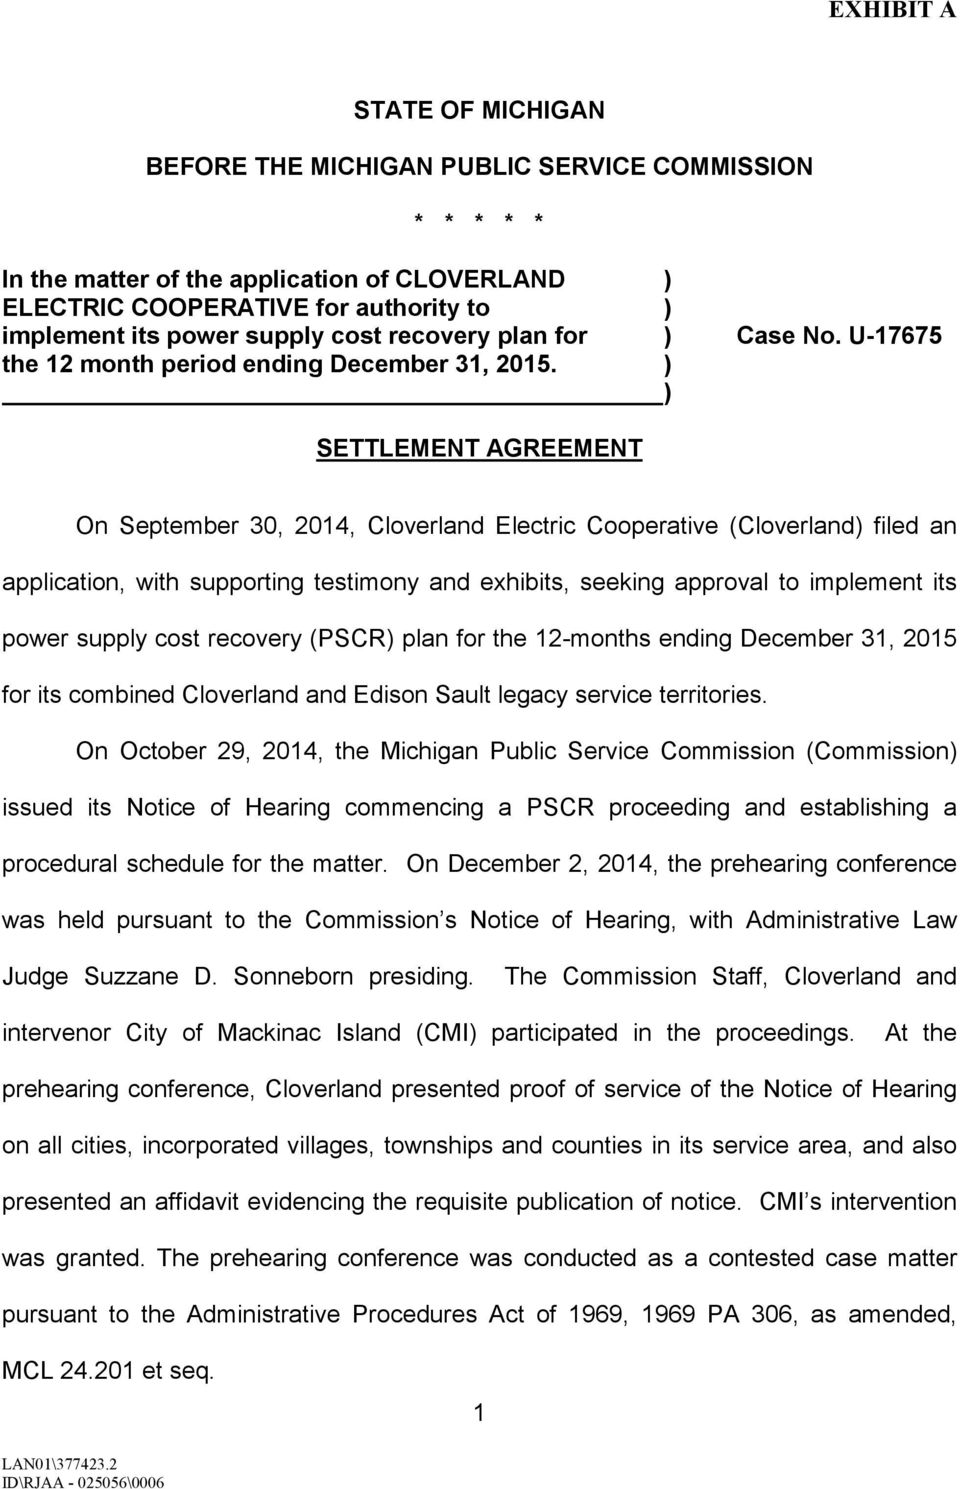 ) ) SETTLEMENT AGREEMENT On September 30, 2014, Cloverland Electric Cooperative (Cloverland) filed an application, with supporting testimony and exhibits, seeking approval to implement its power